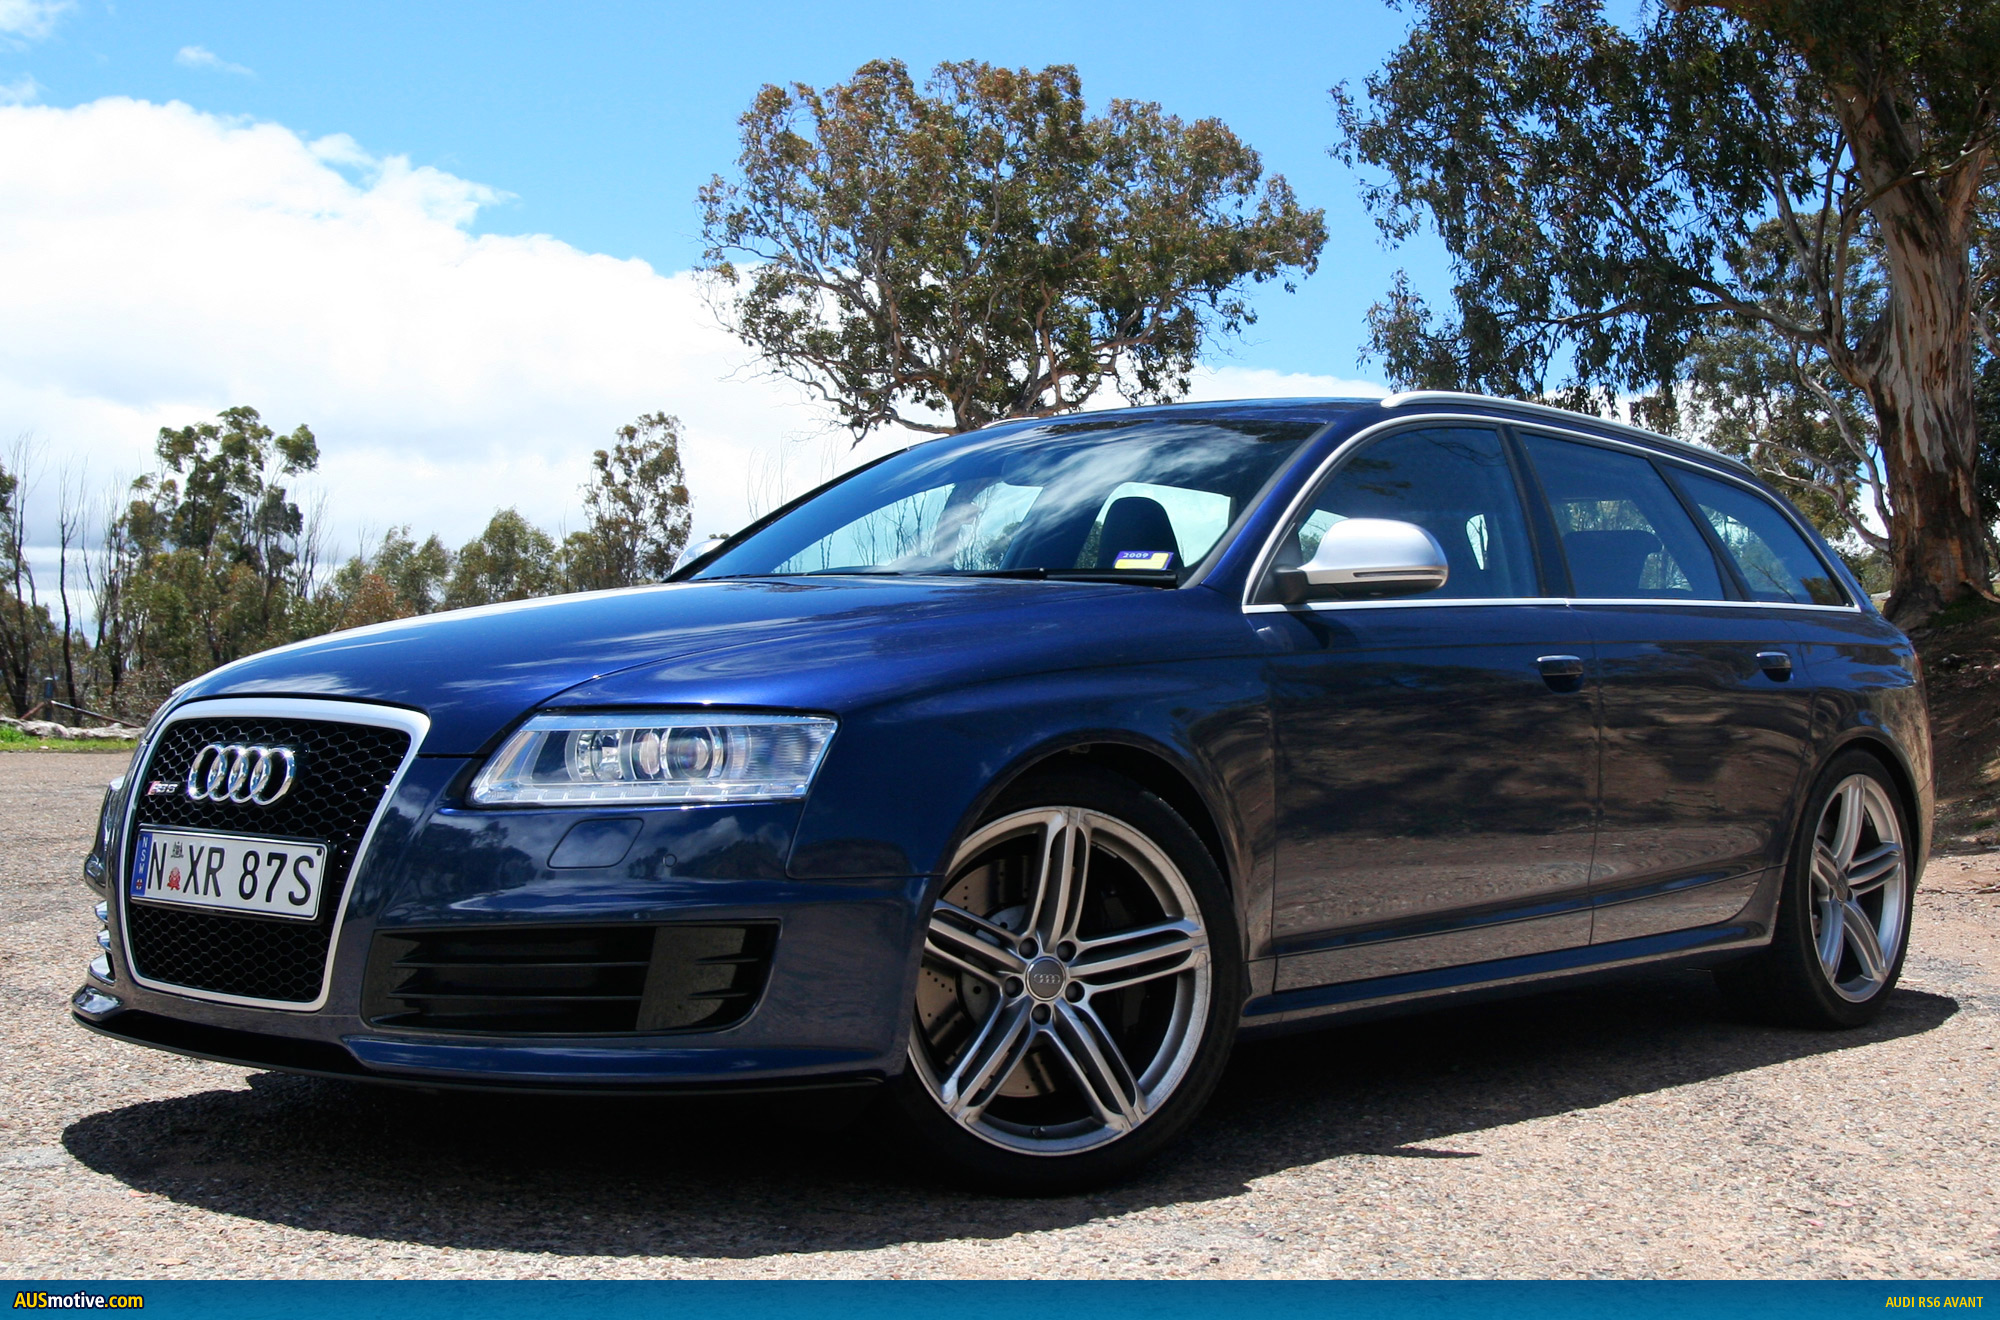 Audi Rs4 2000 Review Amazing Pictures And Images Look